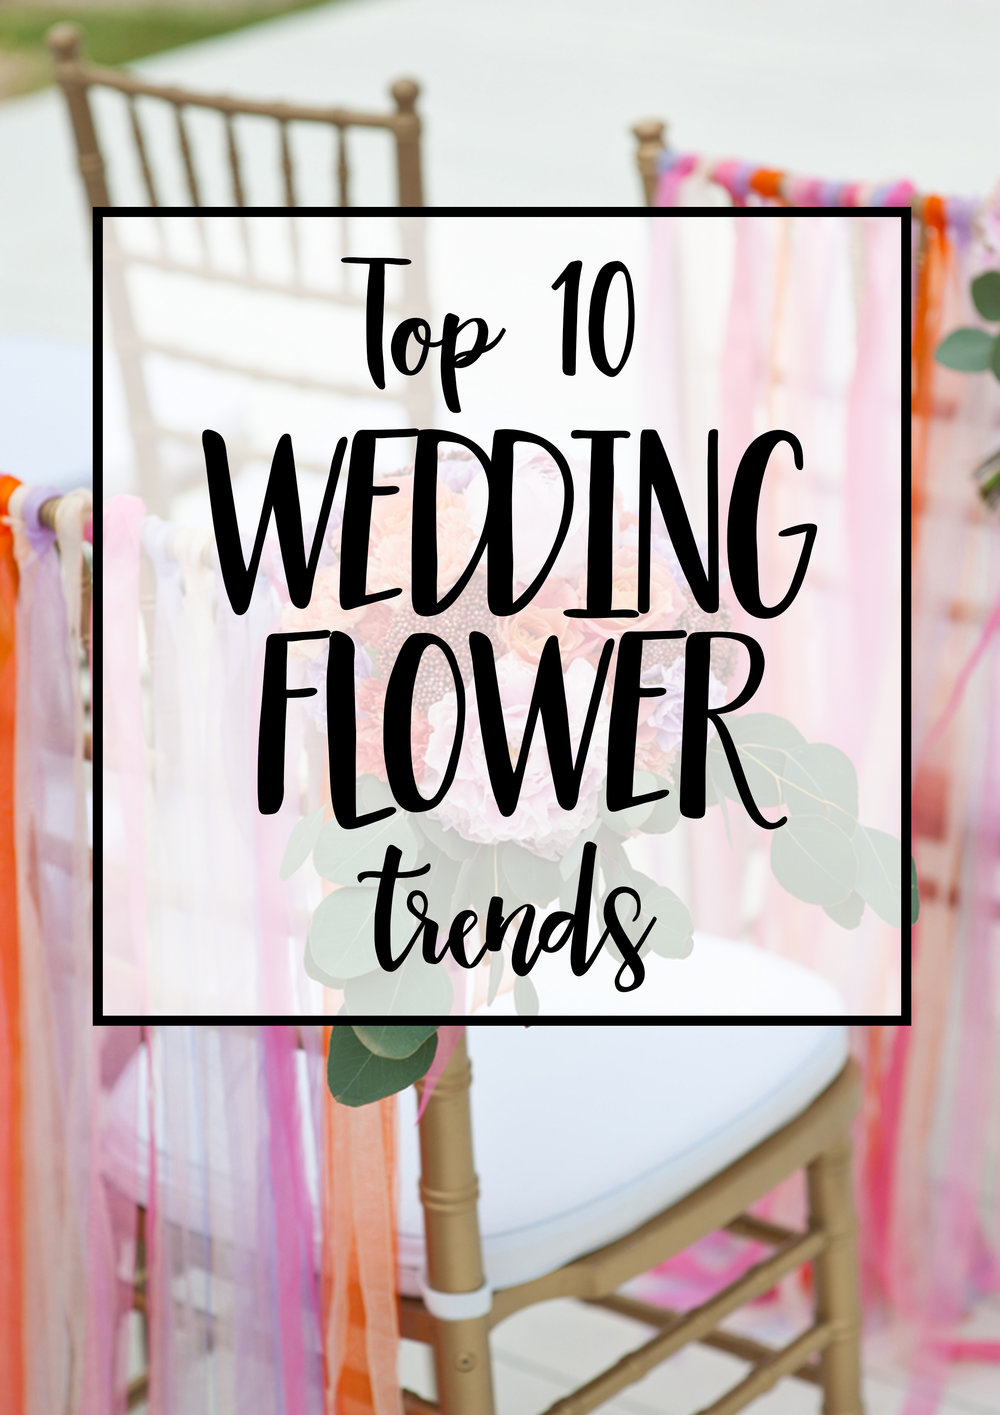 Wedding flower trends, by 29&September